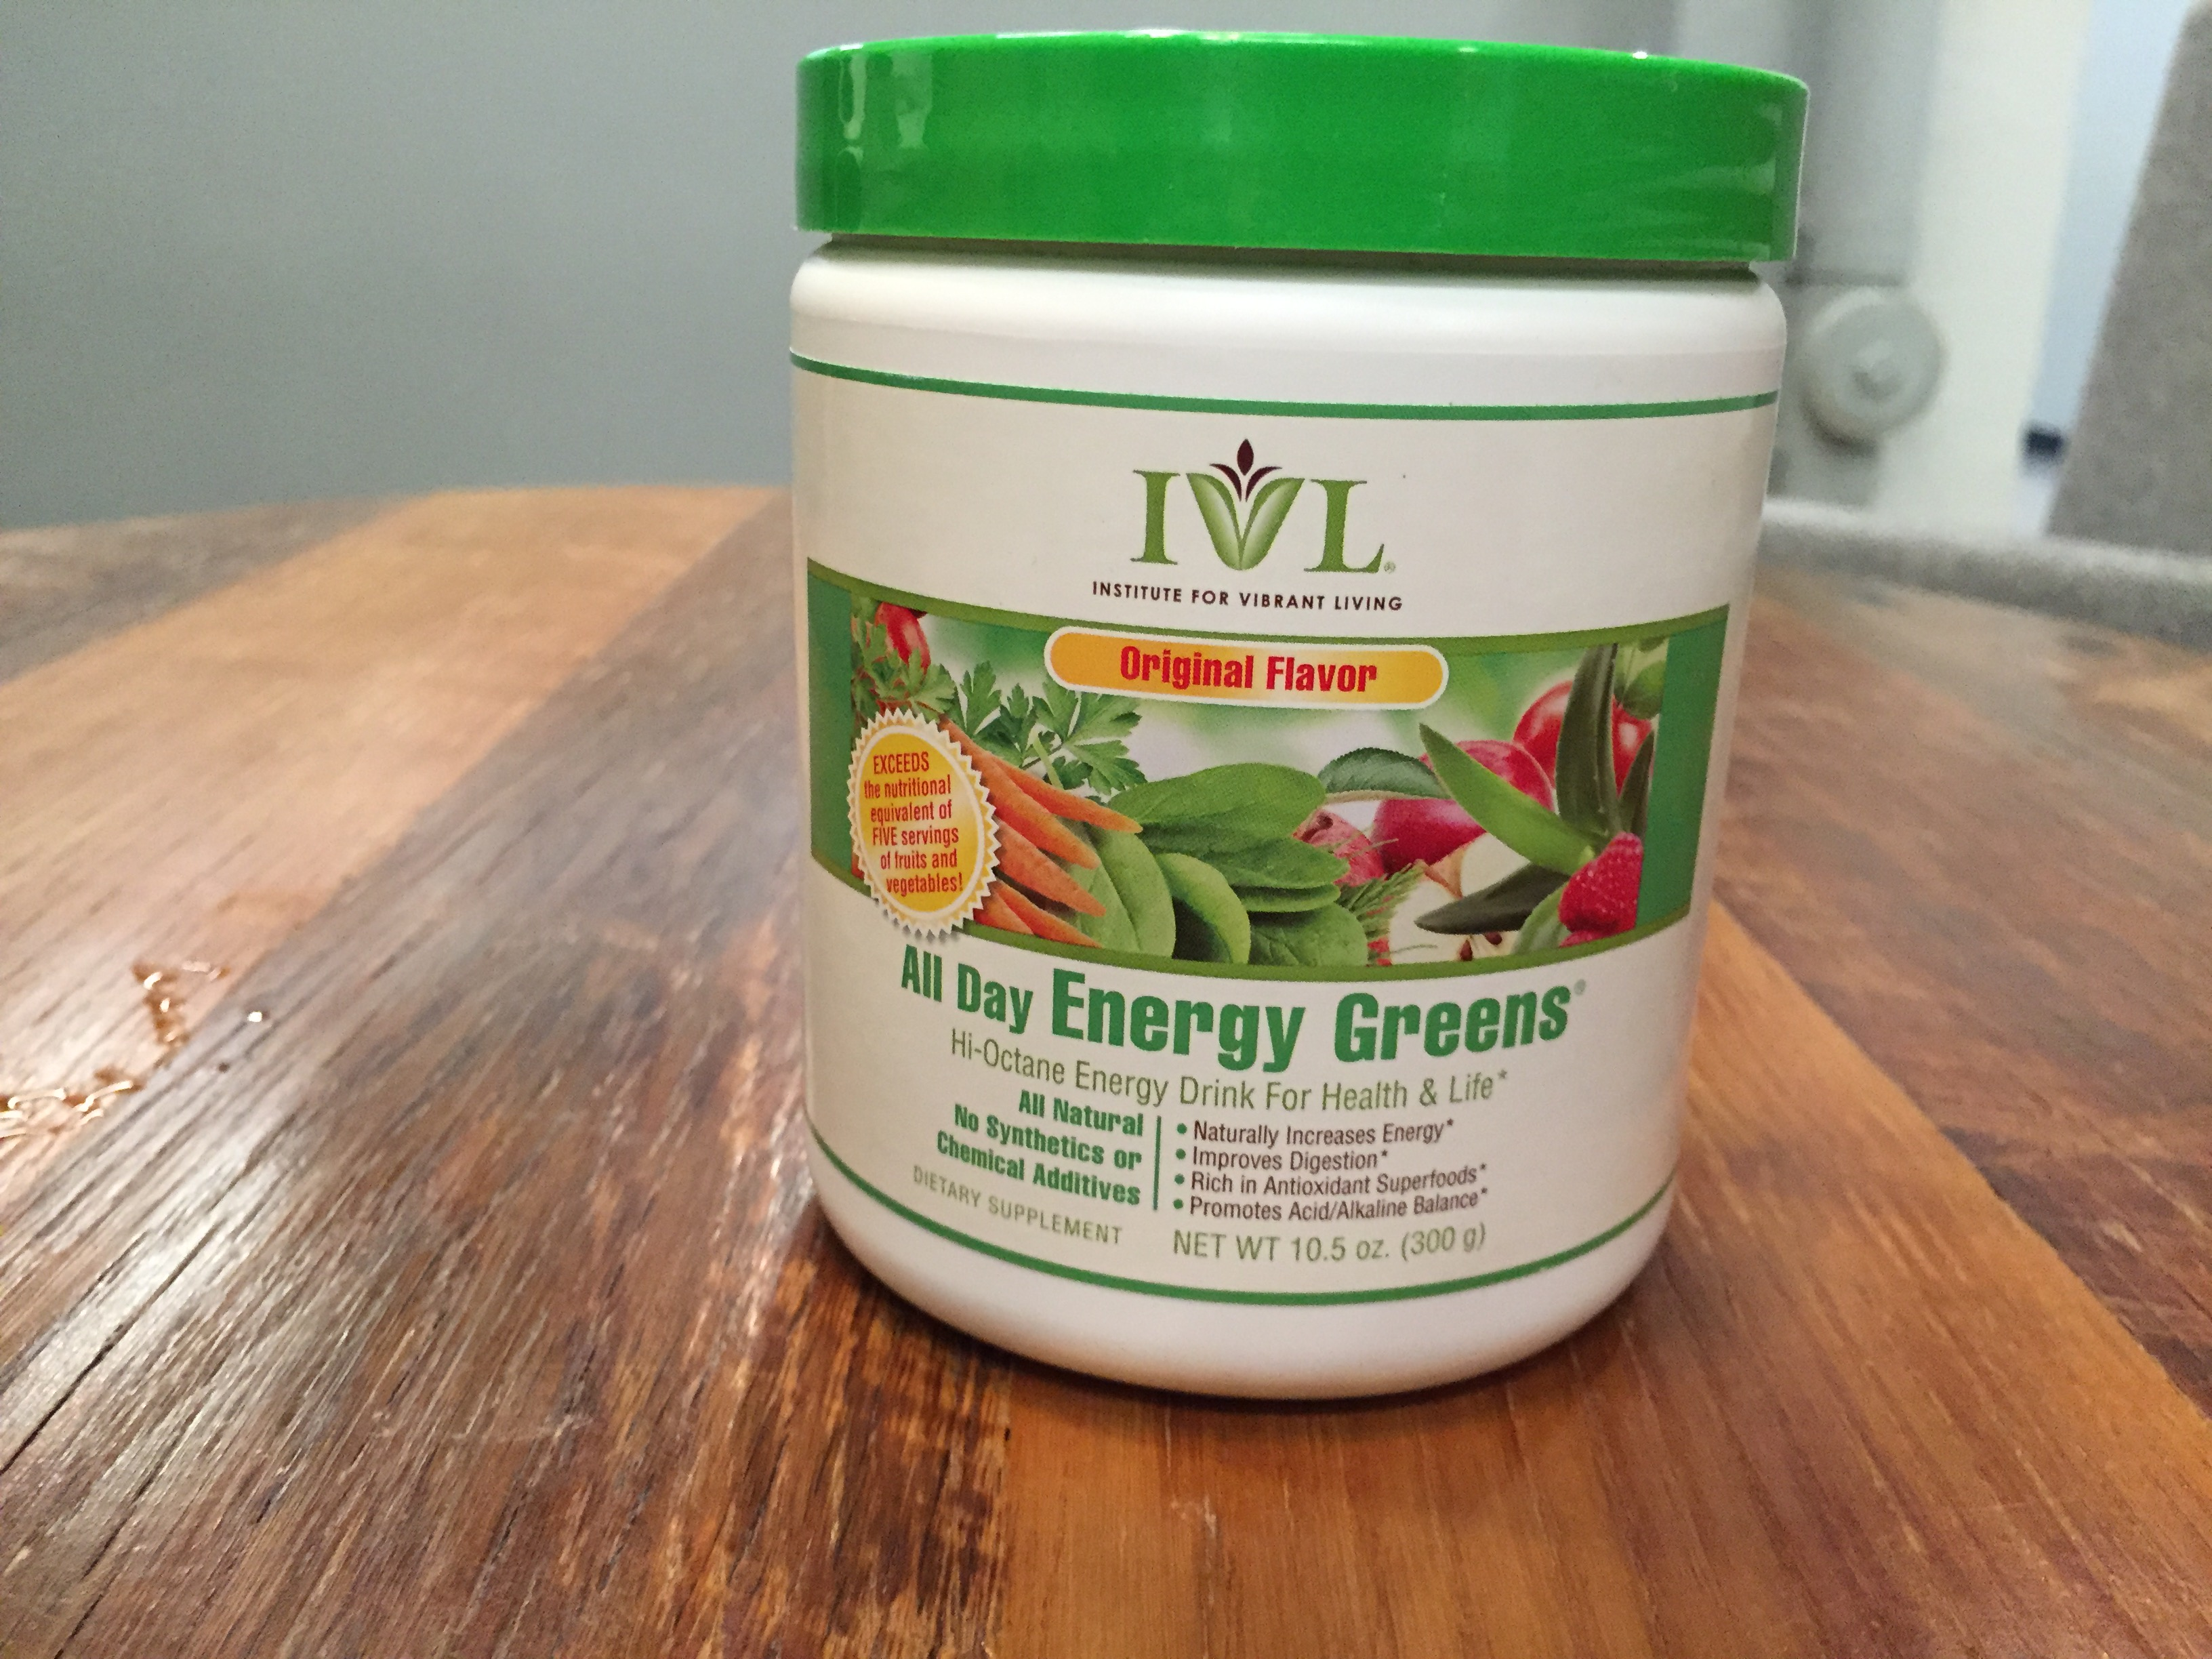 All Day Energy Greens Nutrition